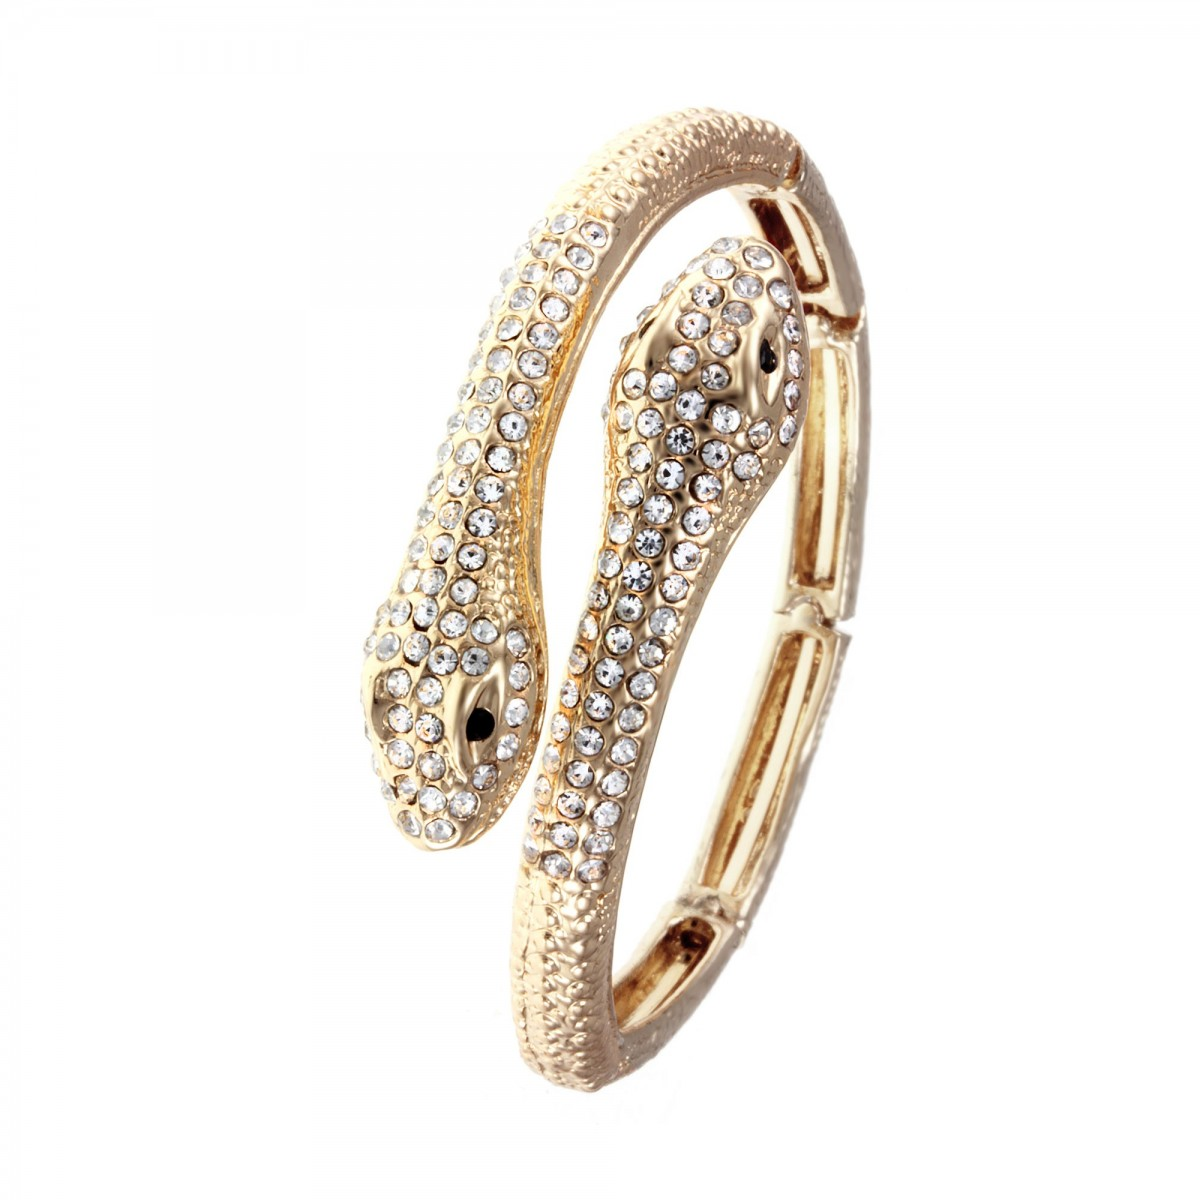 B816-DORE Bracelet bangle serpent So Charm made with crystals from Swarovski